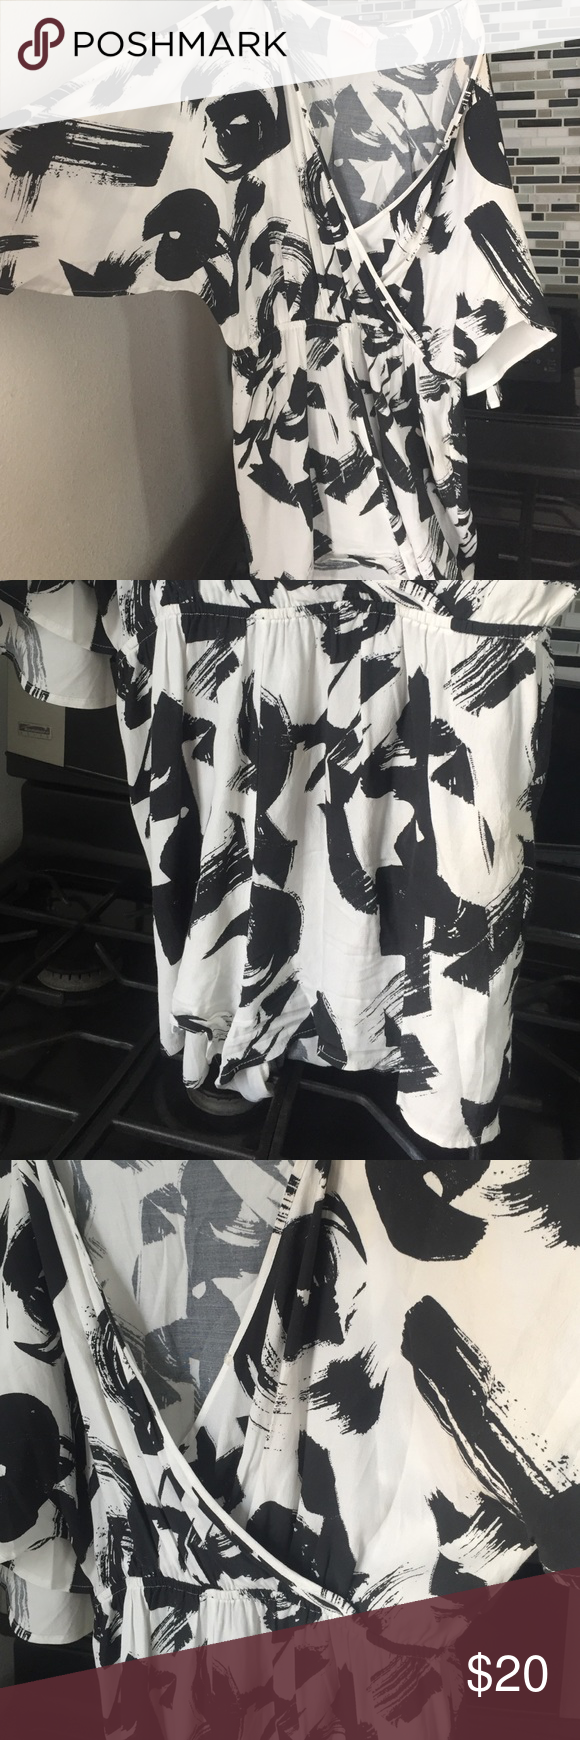 Black and white romper Cute black and white romper with low cut front Isla Other